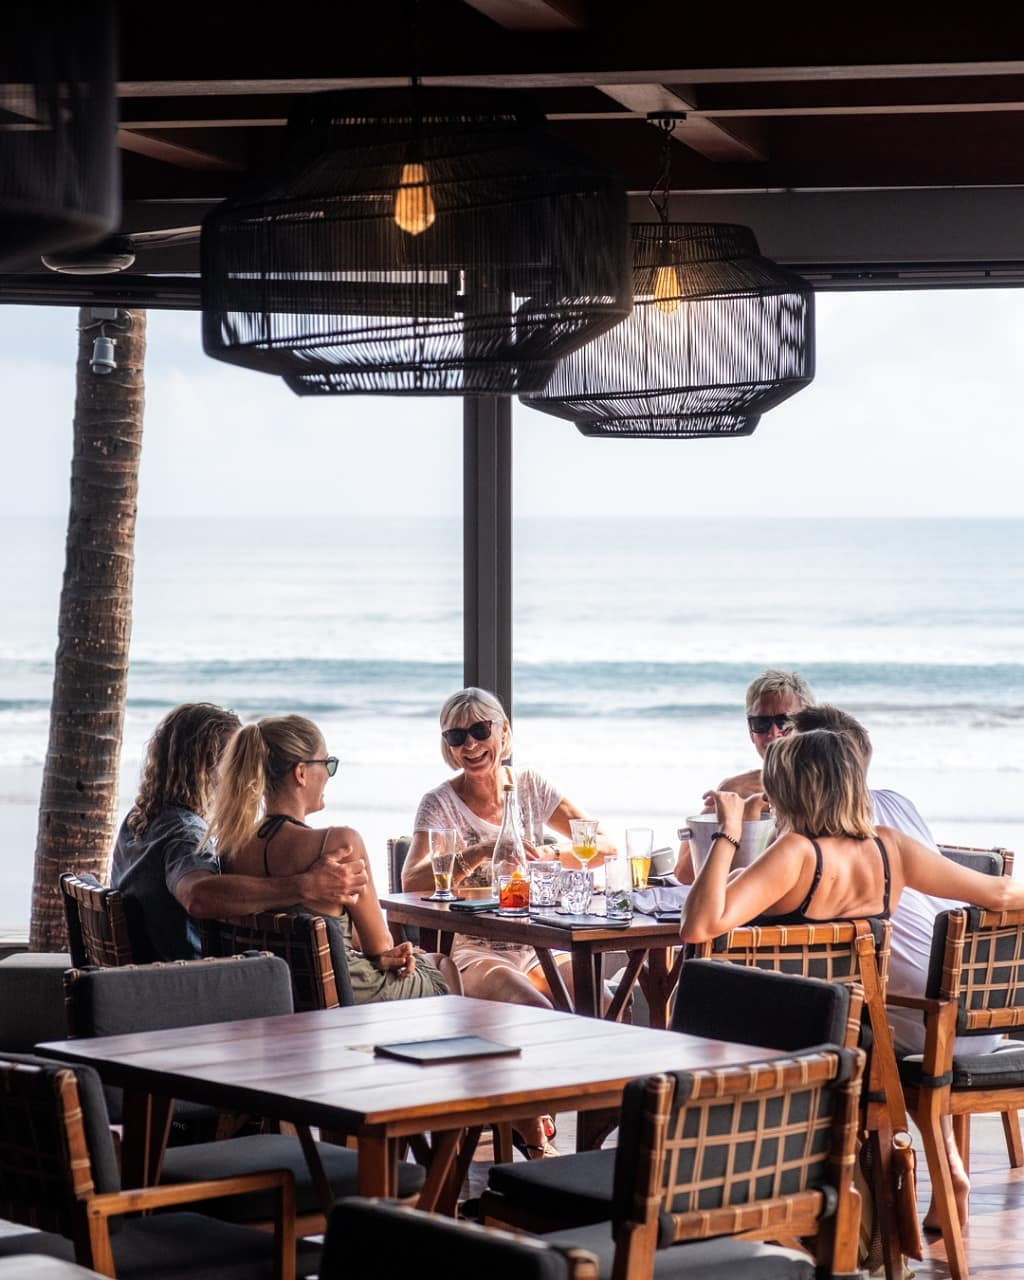 20 Fancy Bali Beach Club For The Fullest Excitement Wandernesia